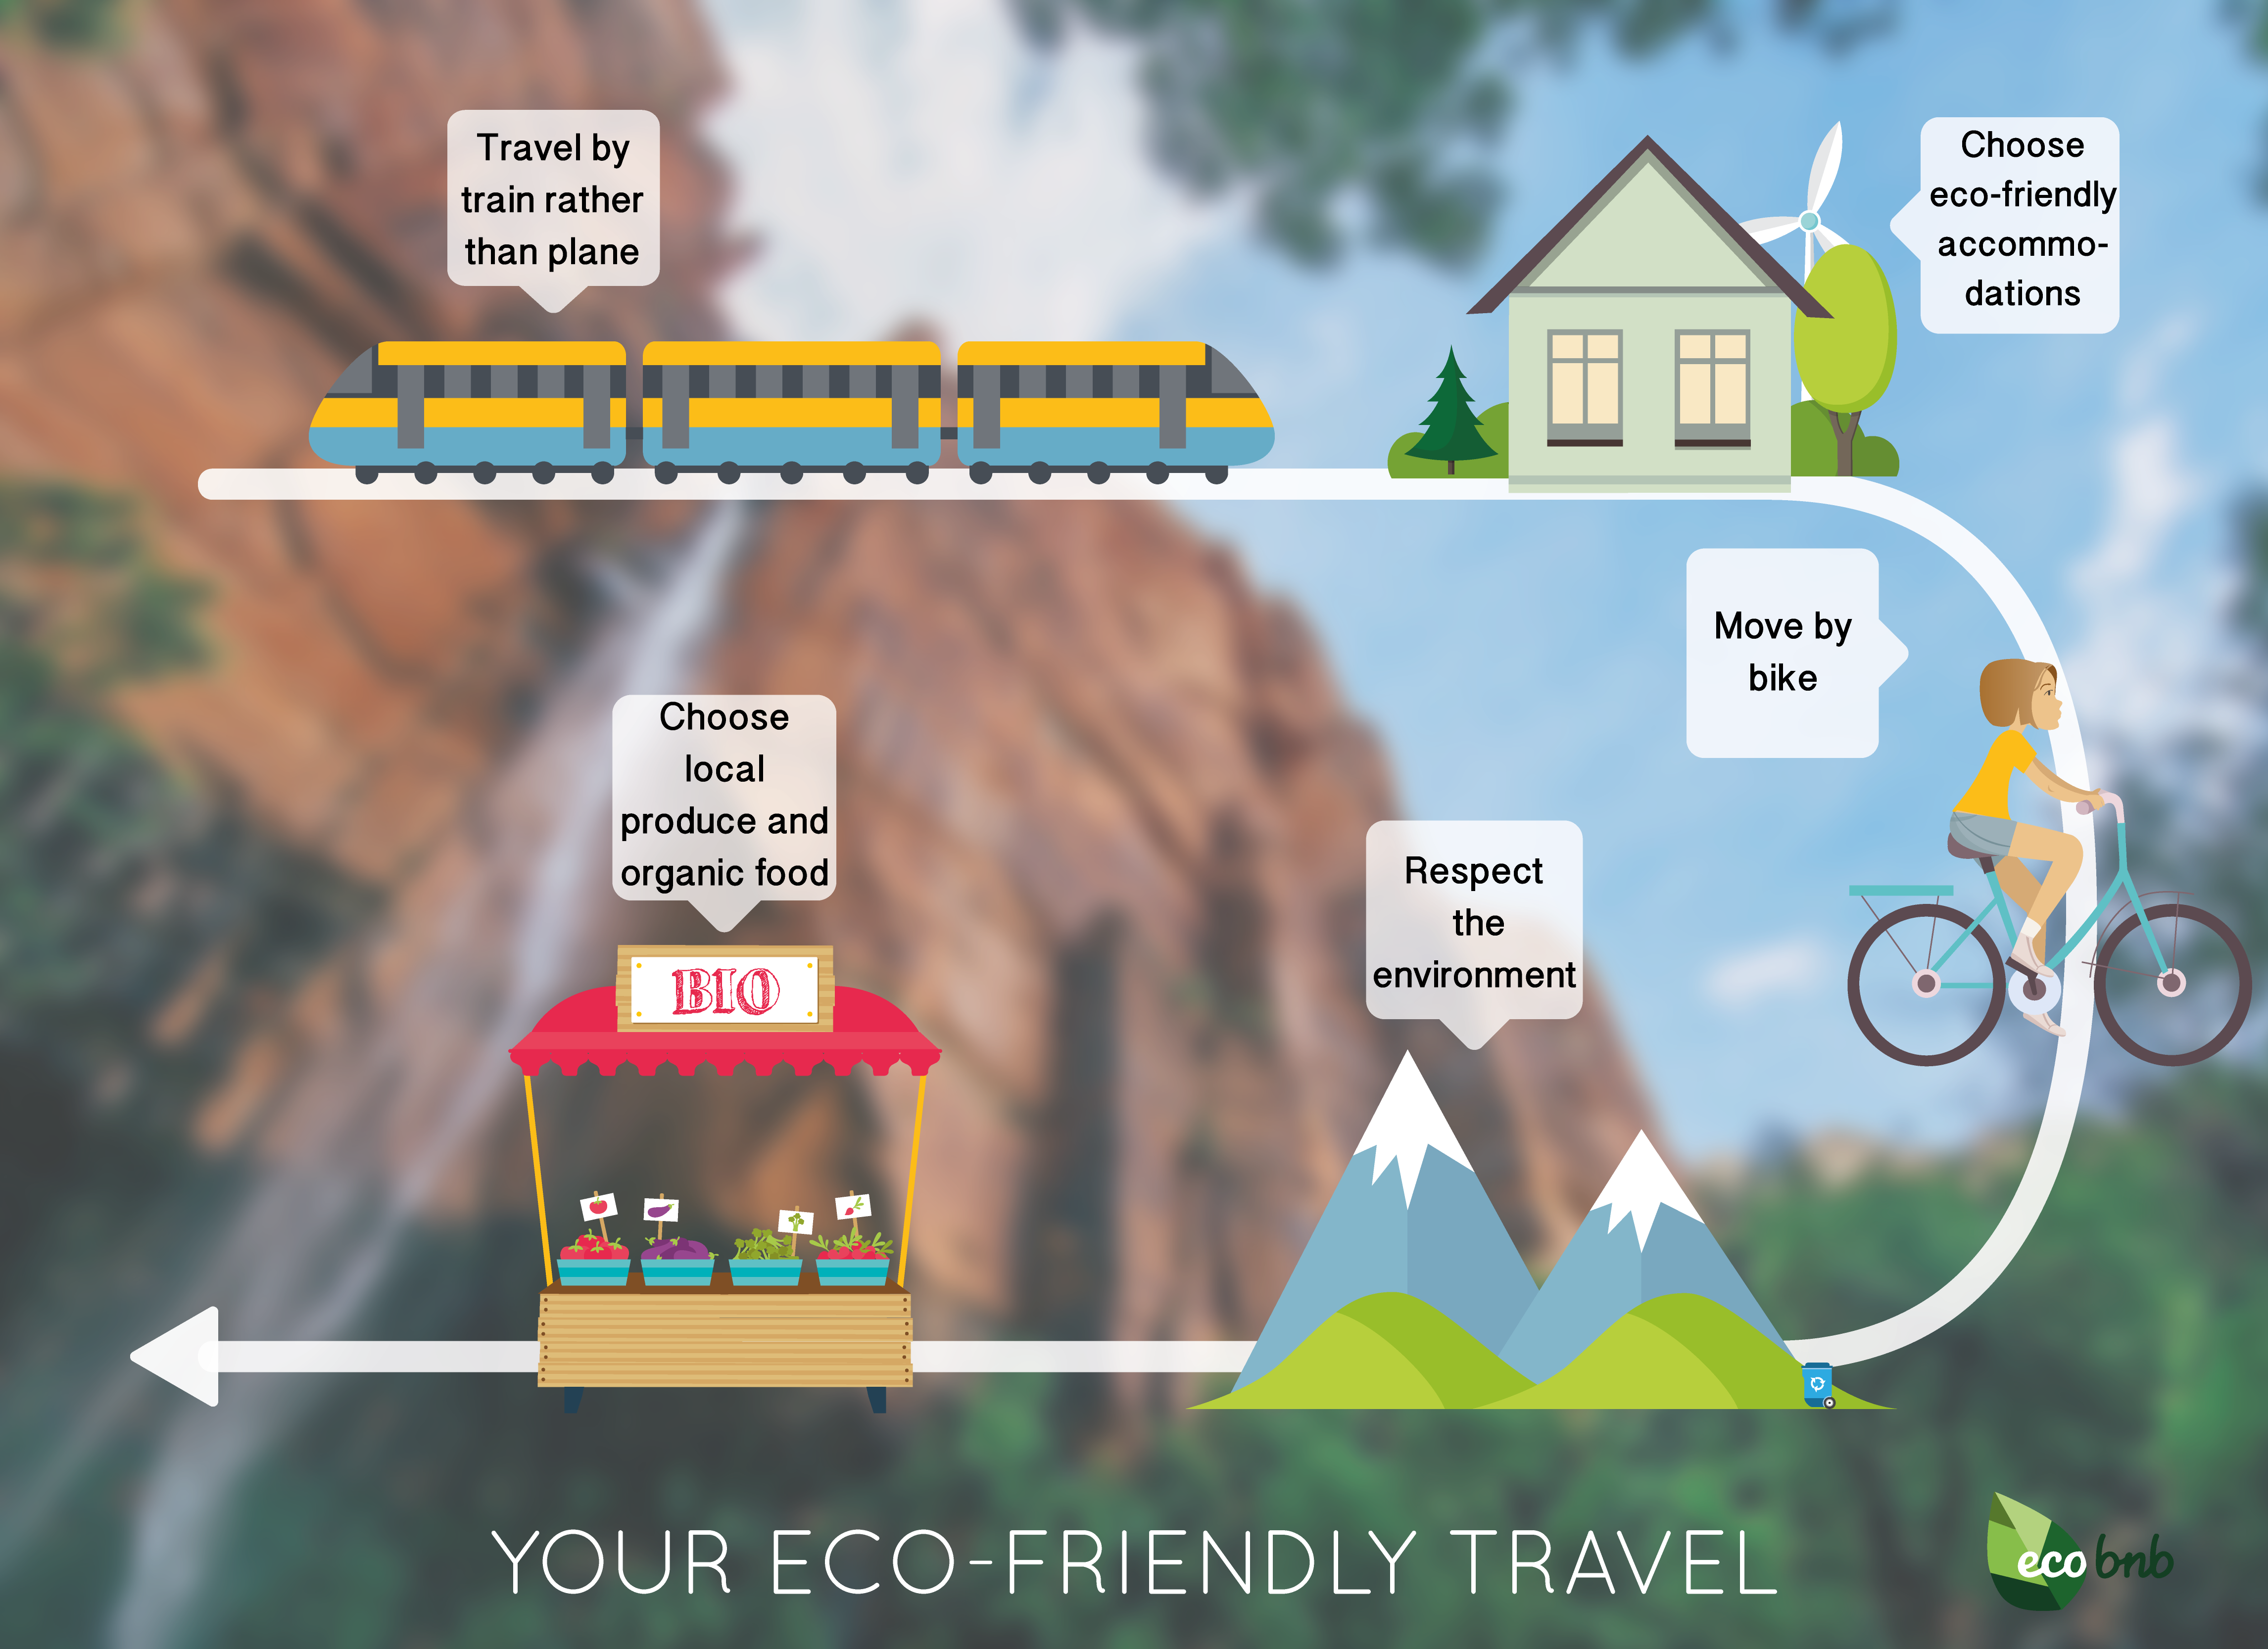 Your eco-friendly travel